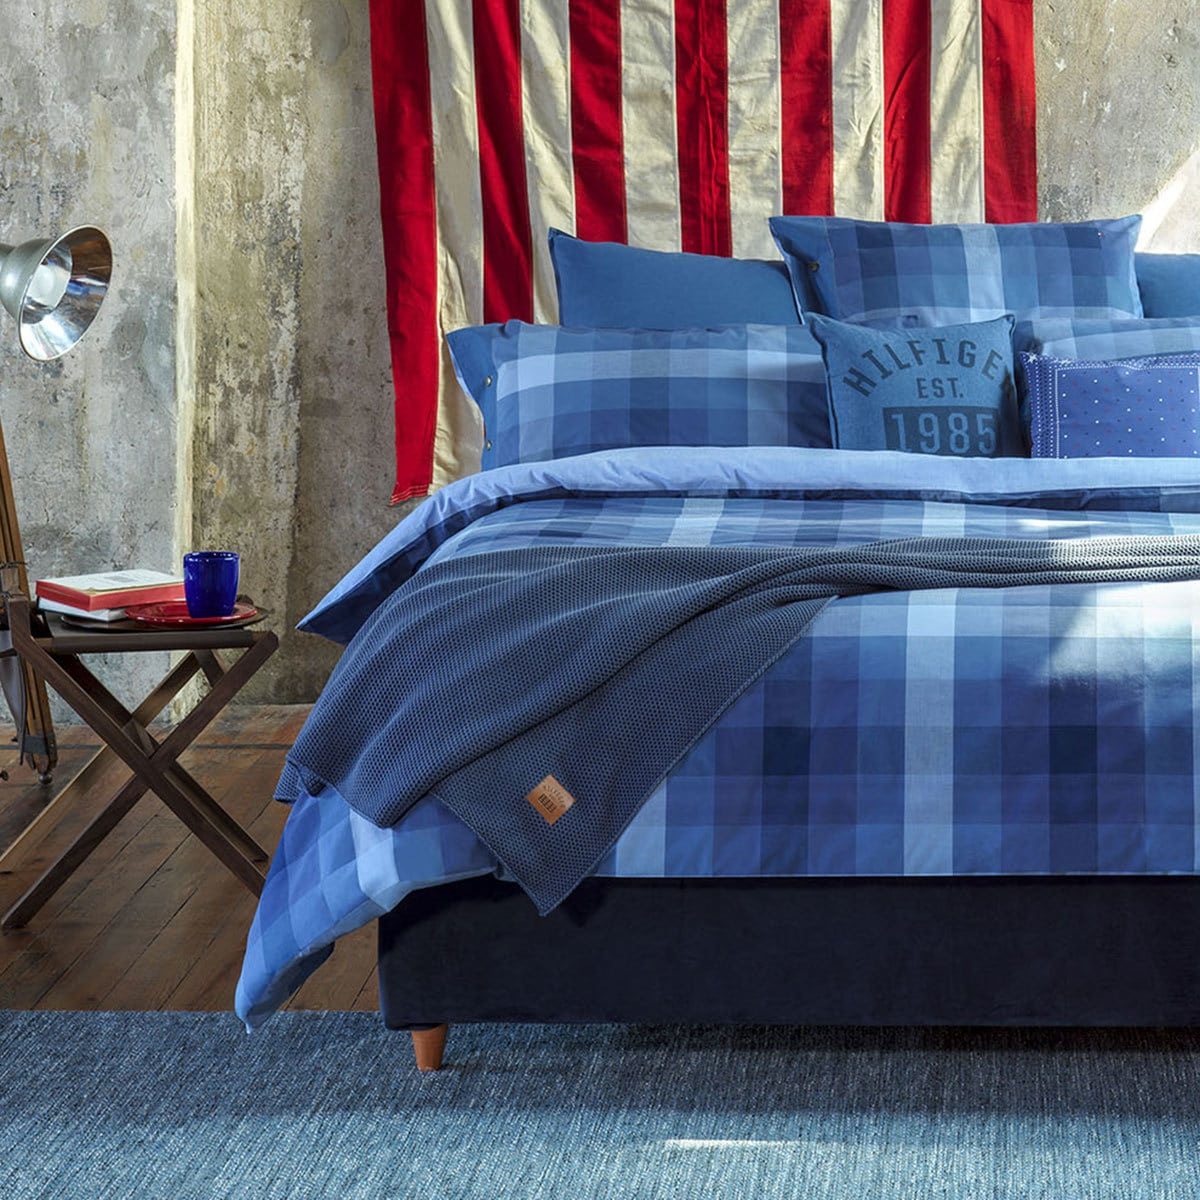 tommy hilfiger perkal bettw sche preppy look kariert denim g nstig online kaufen bei bettwaren shop. Black Bedroom Furniture Sets. Home Design Ideas